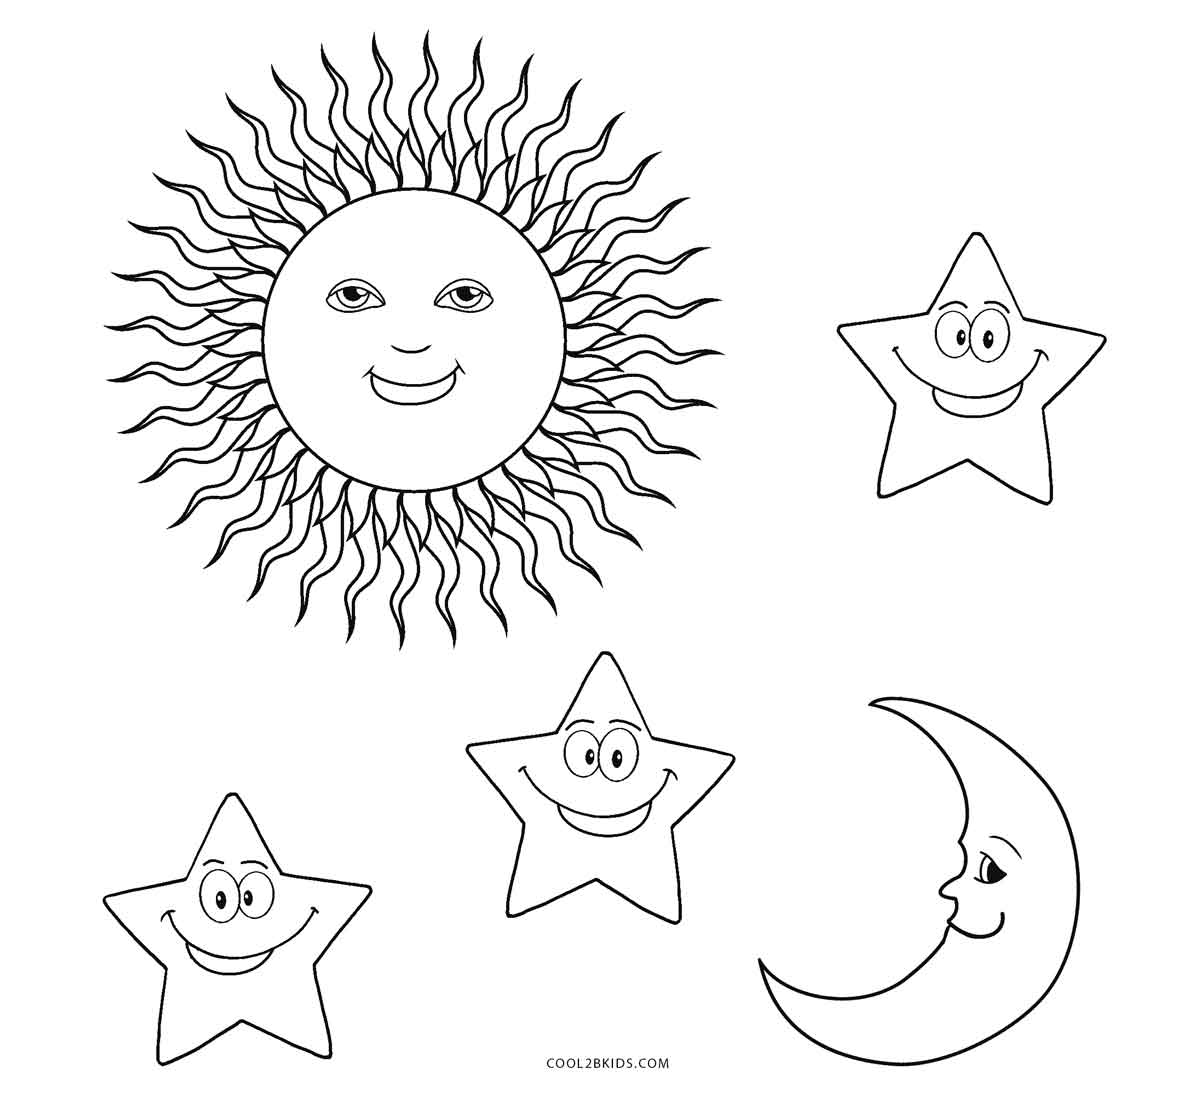 coloring pages sun and moon free printable sun coloring pages for kids cool2bkids moon and sun pages coloring